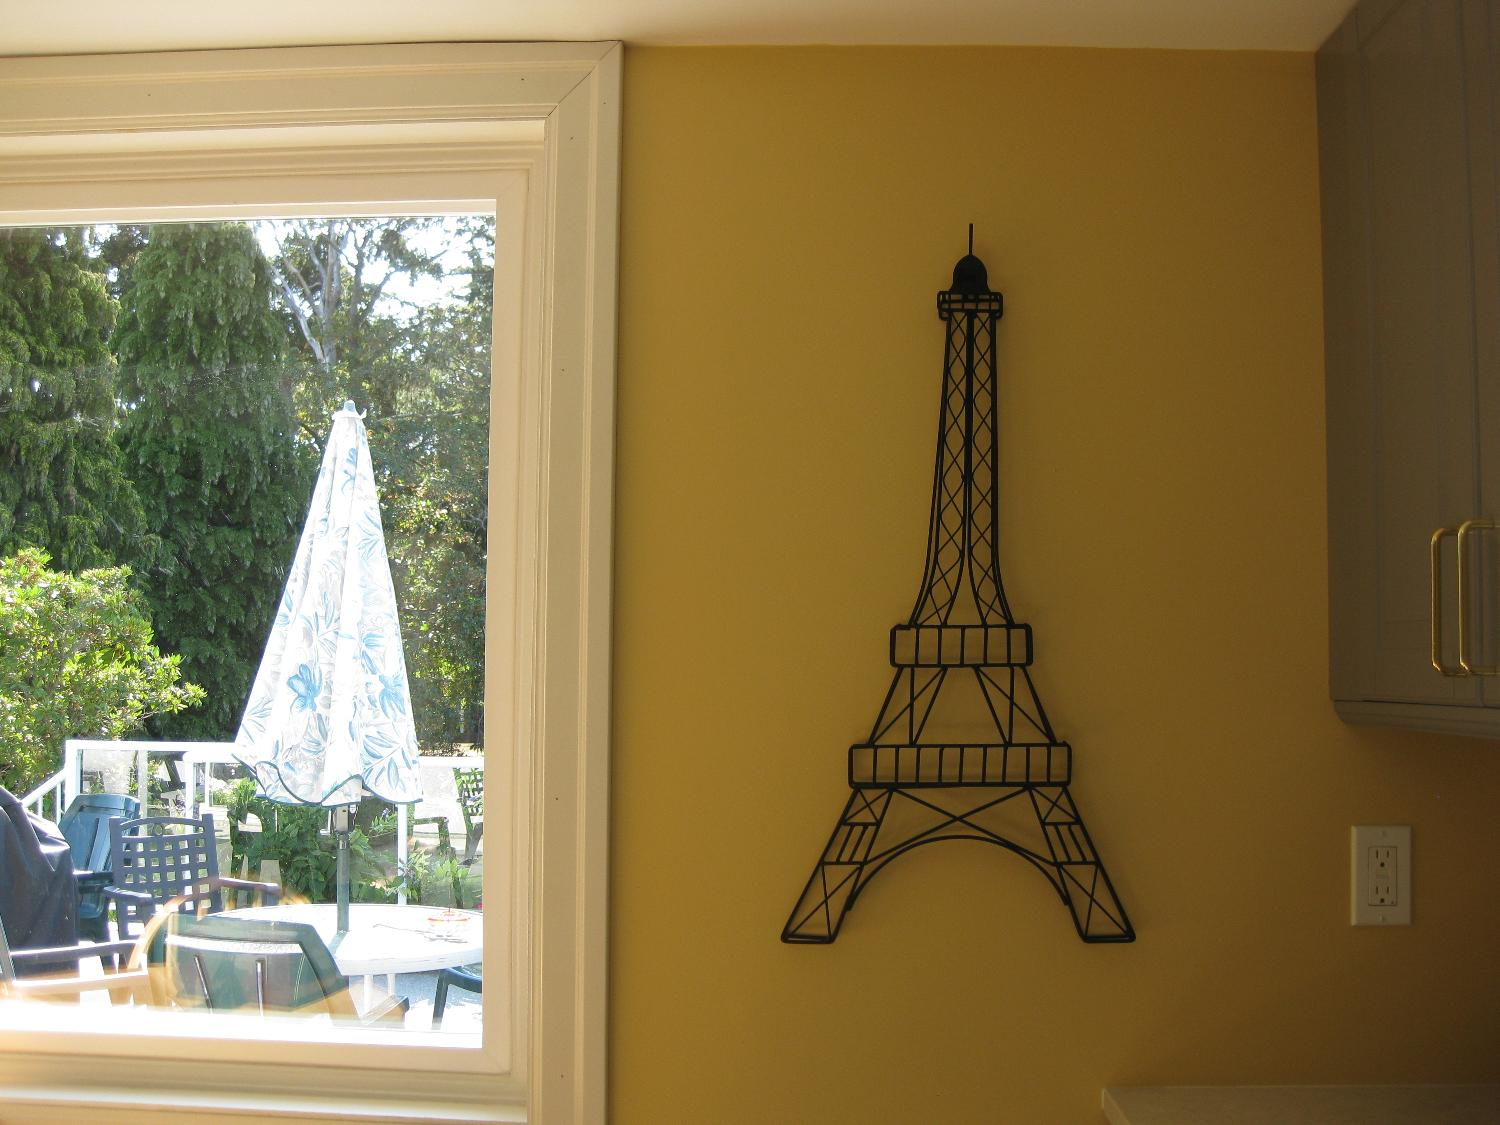 Best Eiffel Tower for sale in Victoria, British Columbia for 2018